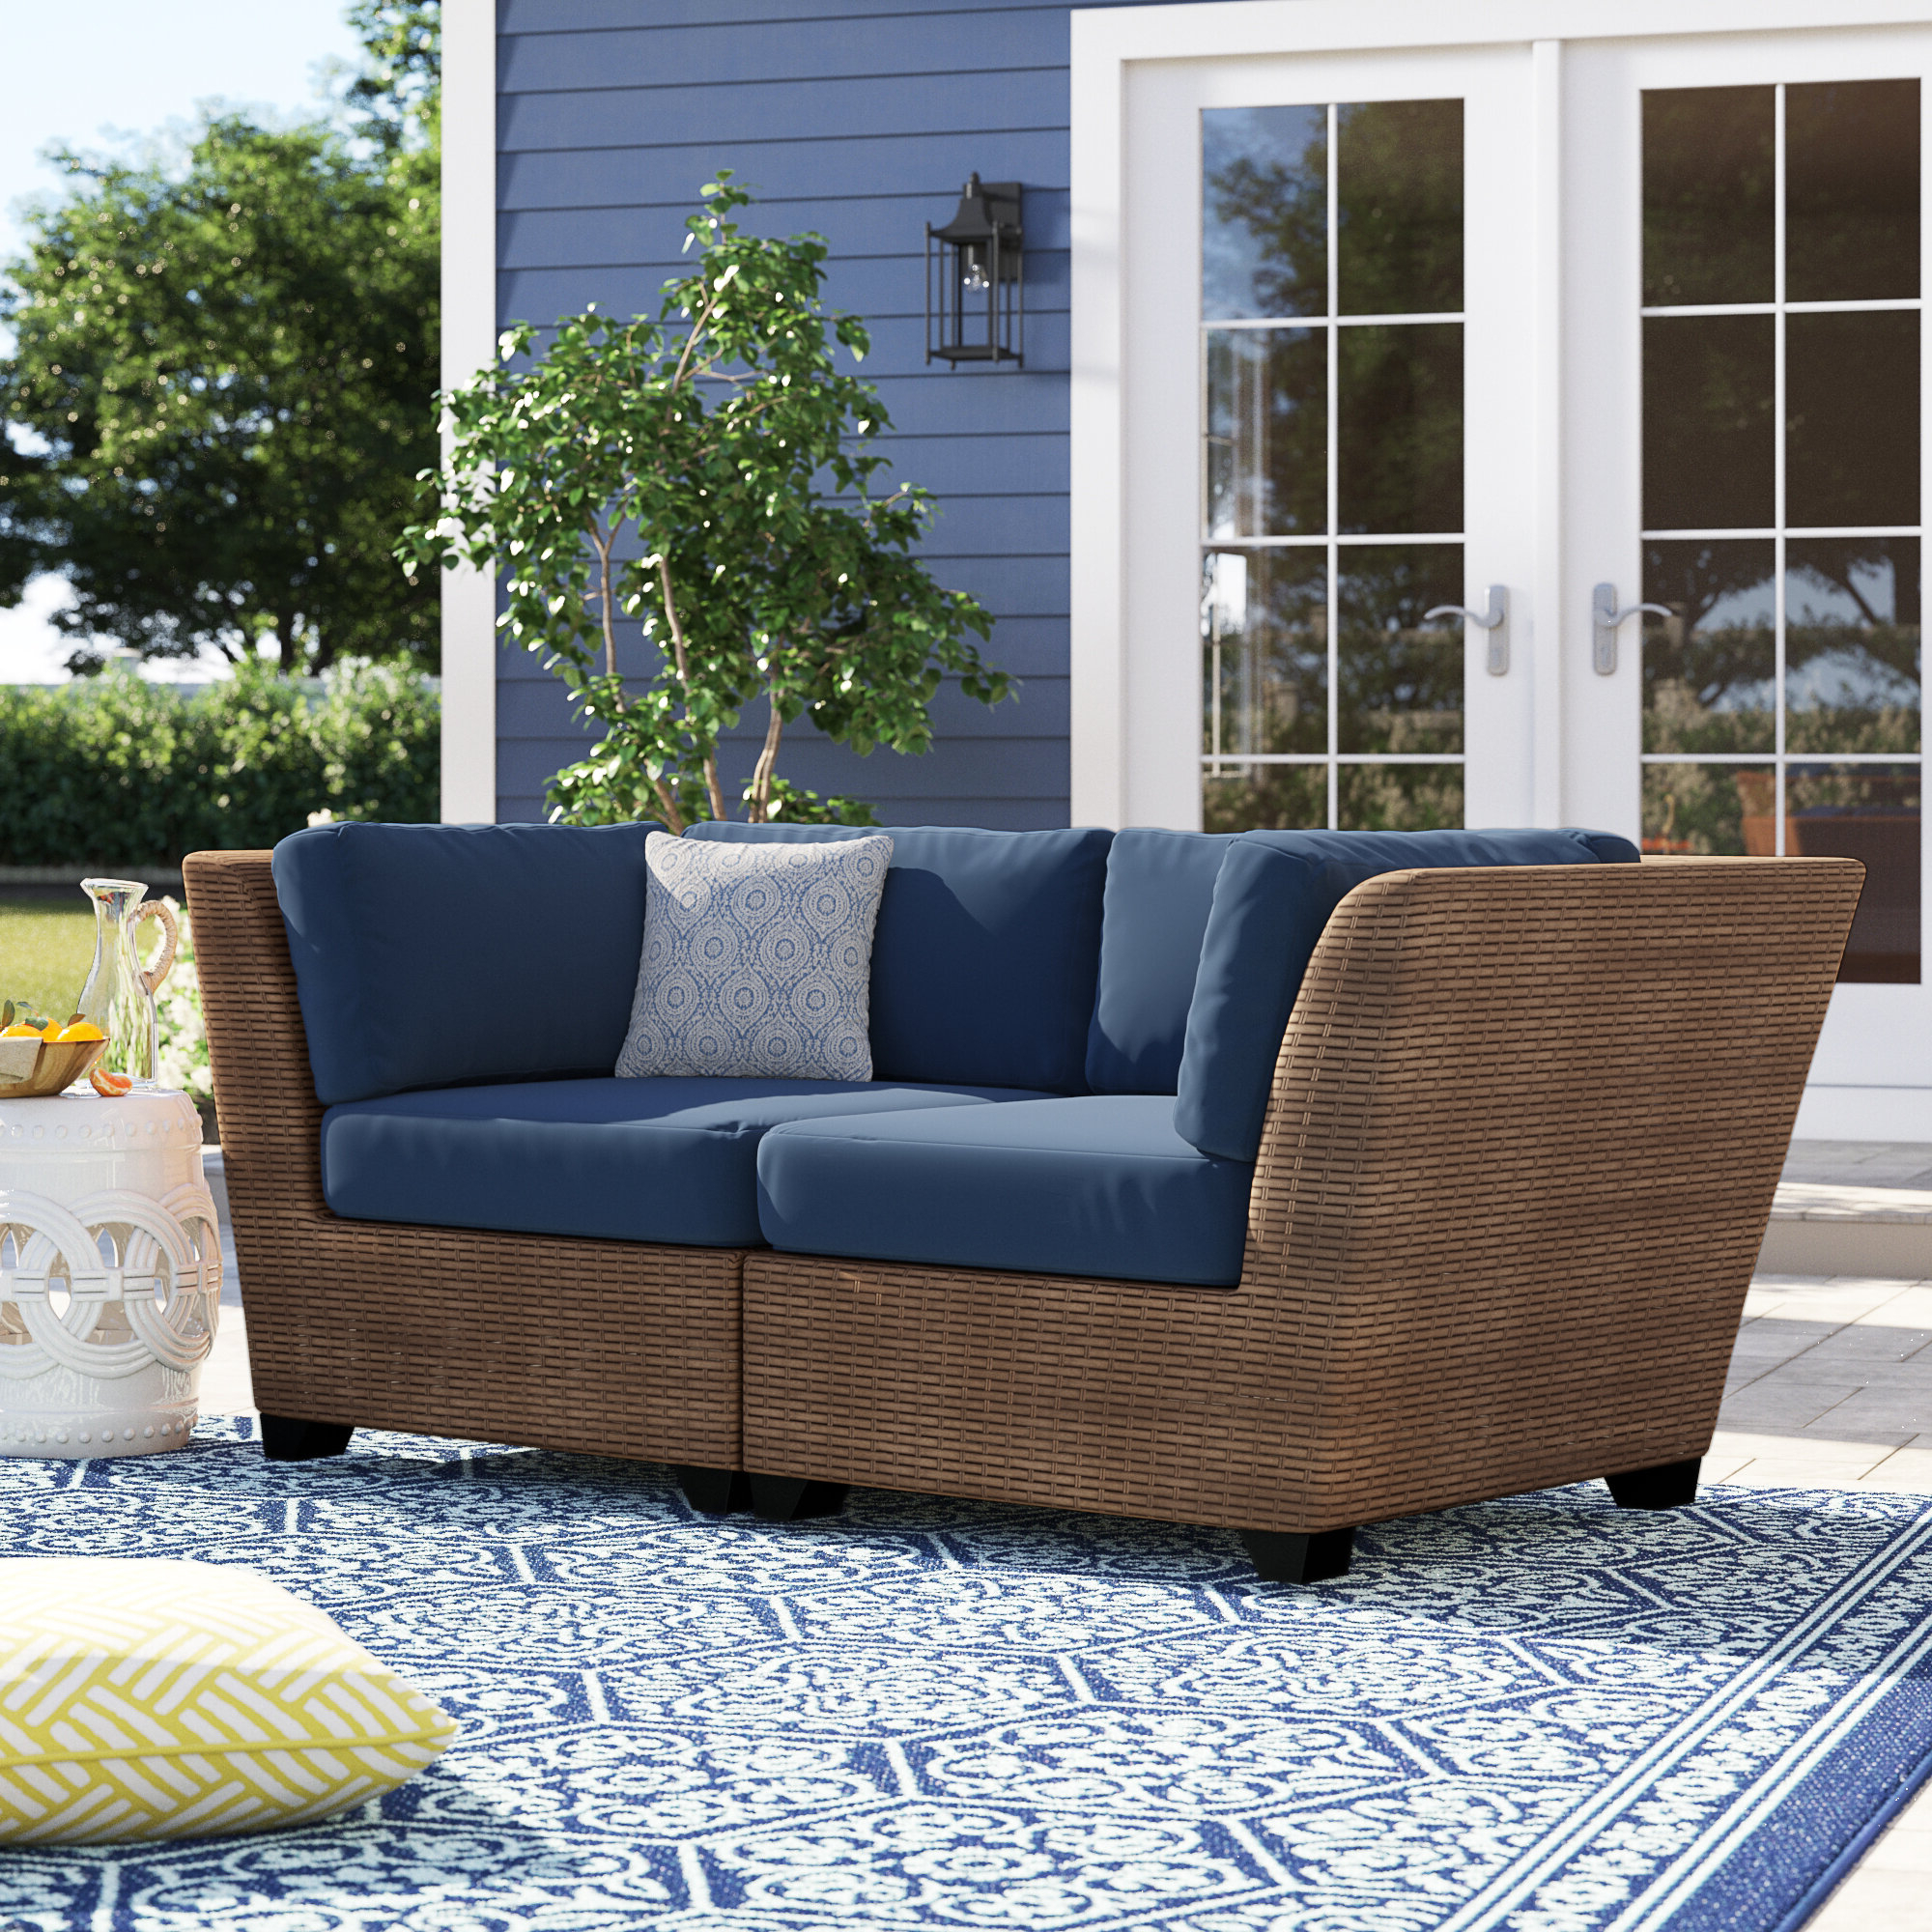 Waterbury Corner Sofa With Cushions Pertaining To Well Liked Avadi Outdoor Sofas & Ottomans 3 Piece Set (Gallery 24 of 25)